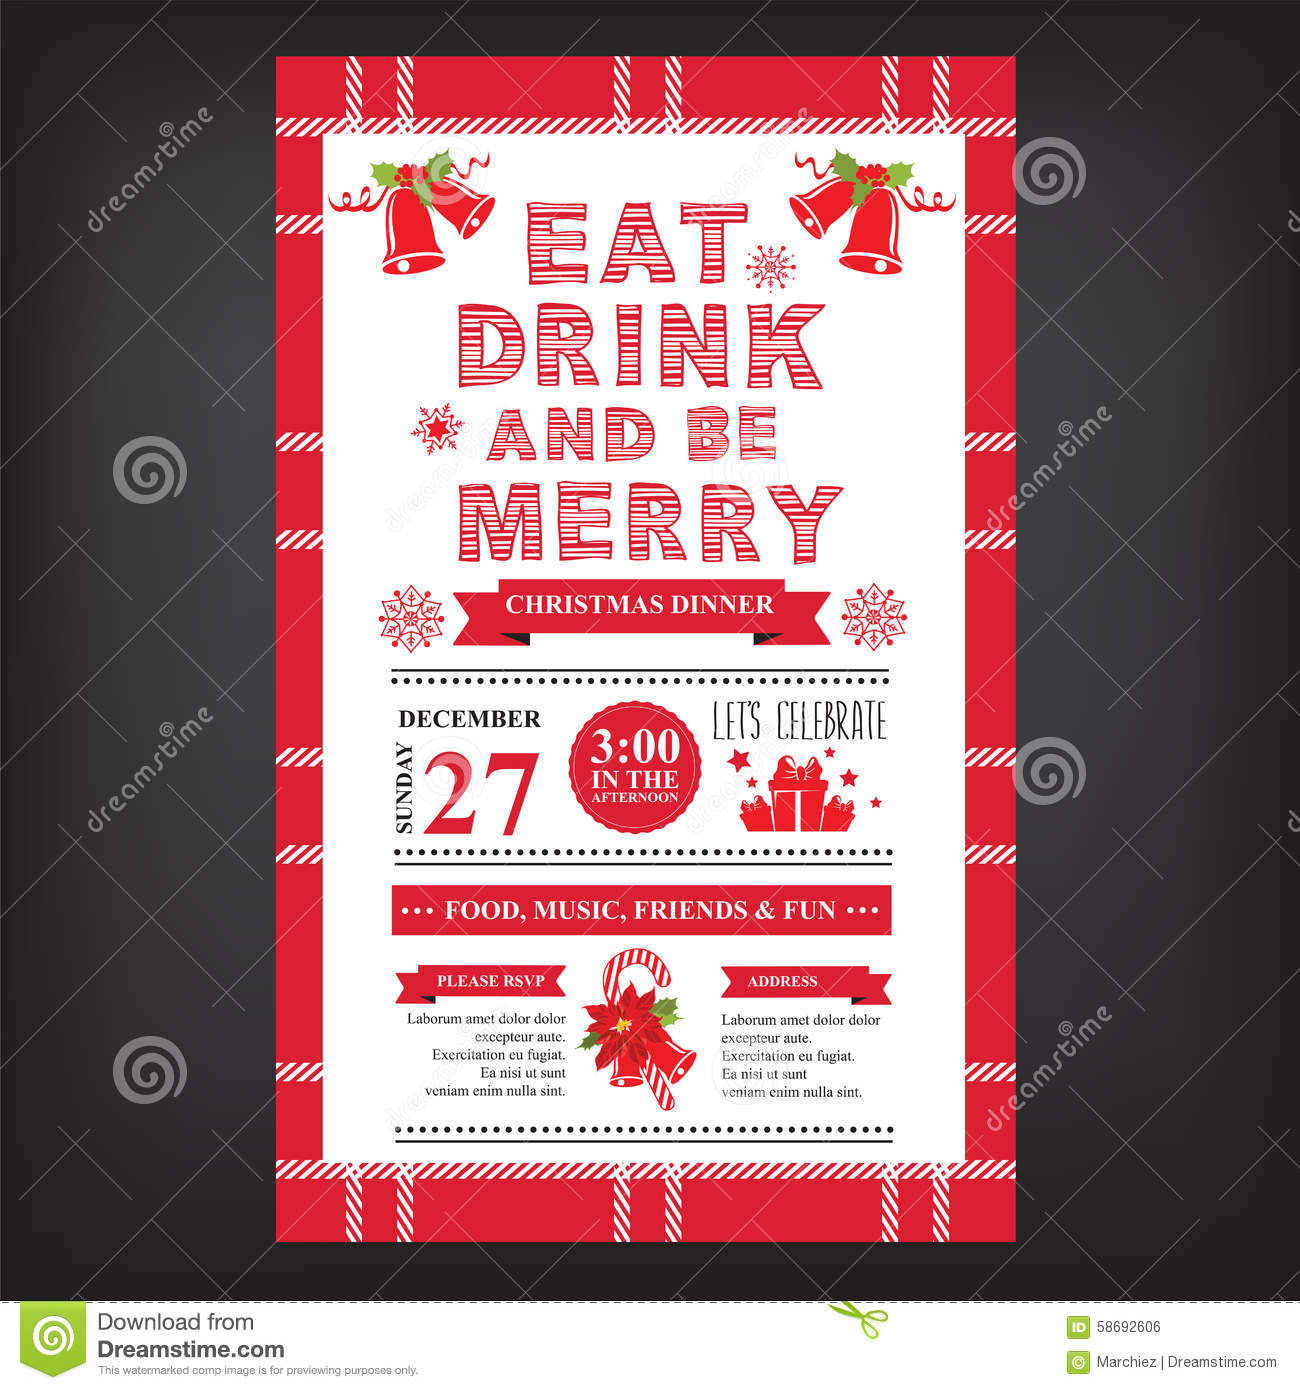 christmas party invitation food menu restaurant stock vector christmas restaurant and party menu invitation royalty stock image